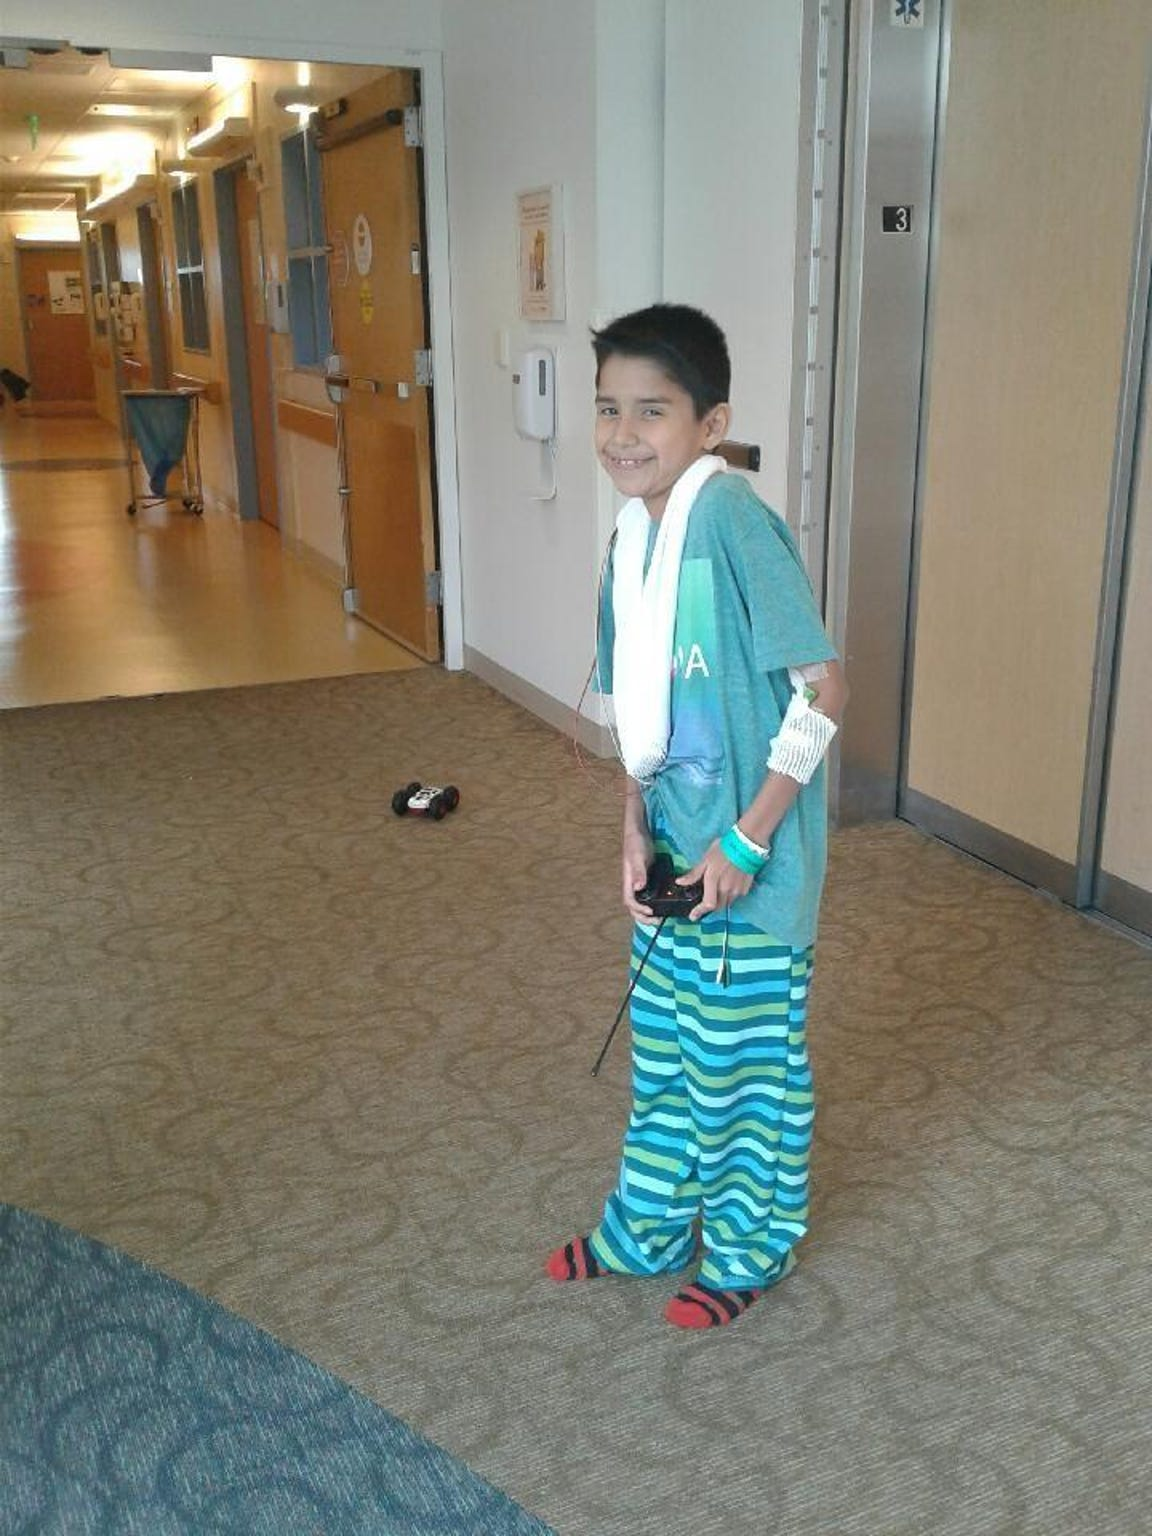 Isaac Guajardo, Jr., playing with a remote control car in the hospital hallway.